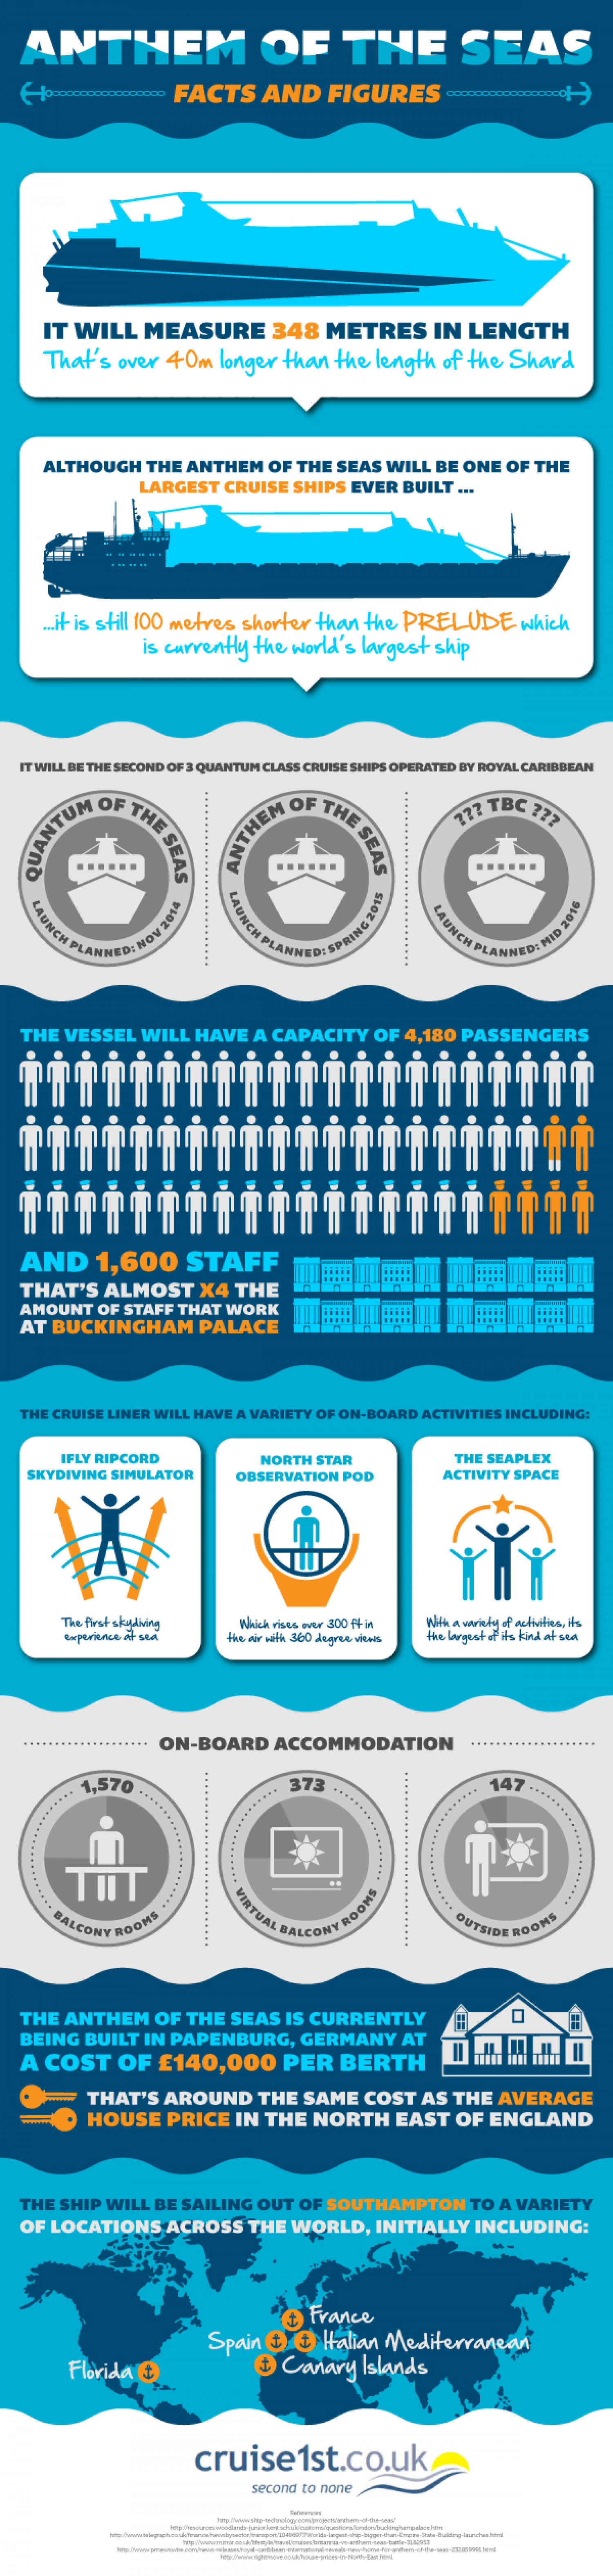 Anthem of the Seas - Facts and Figures Infographic